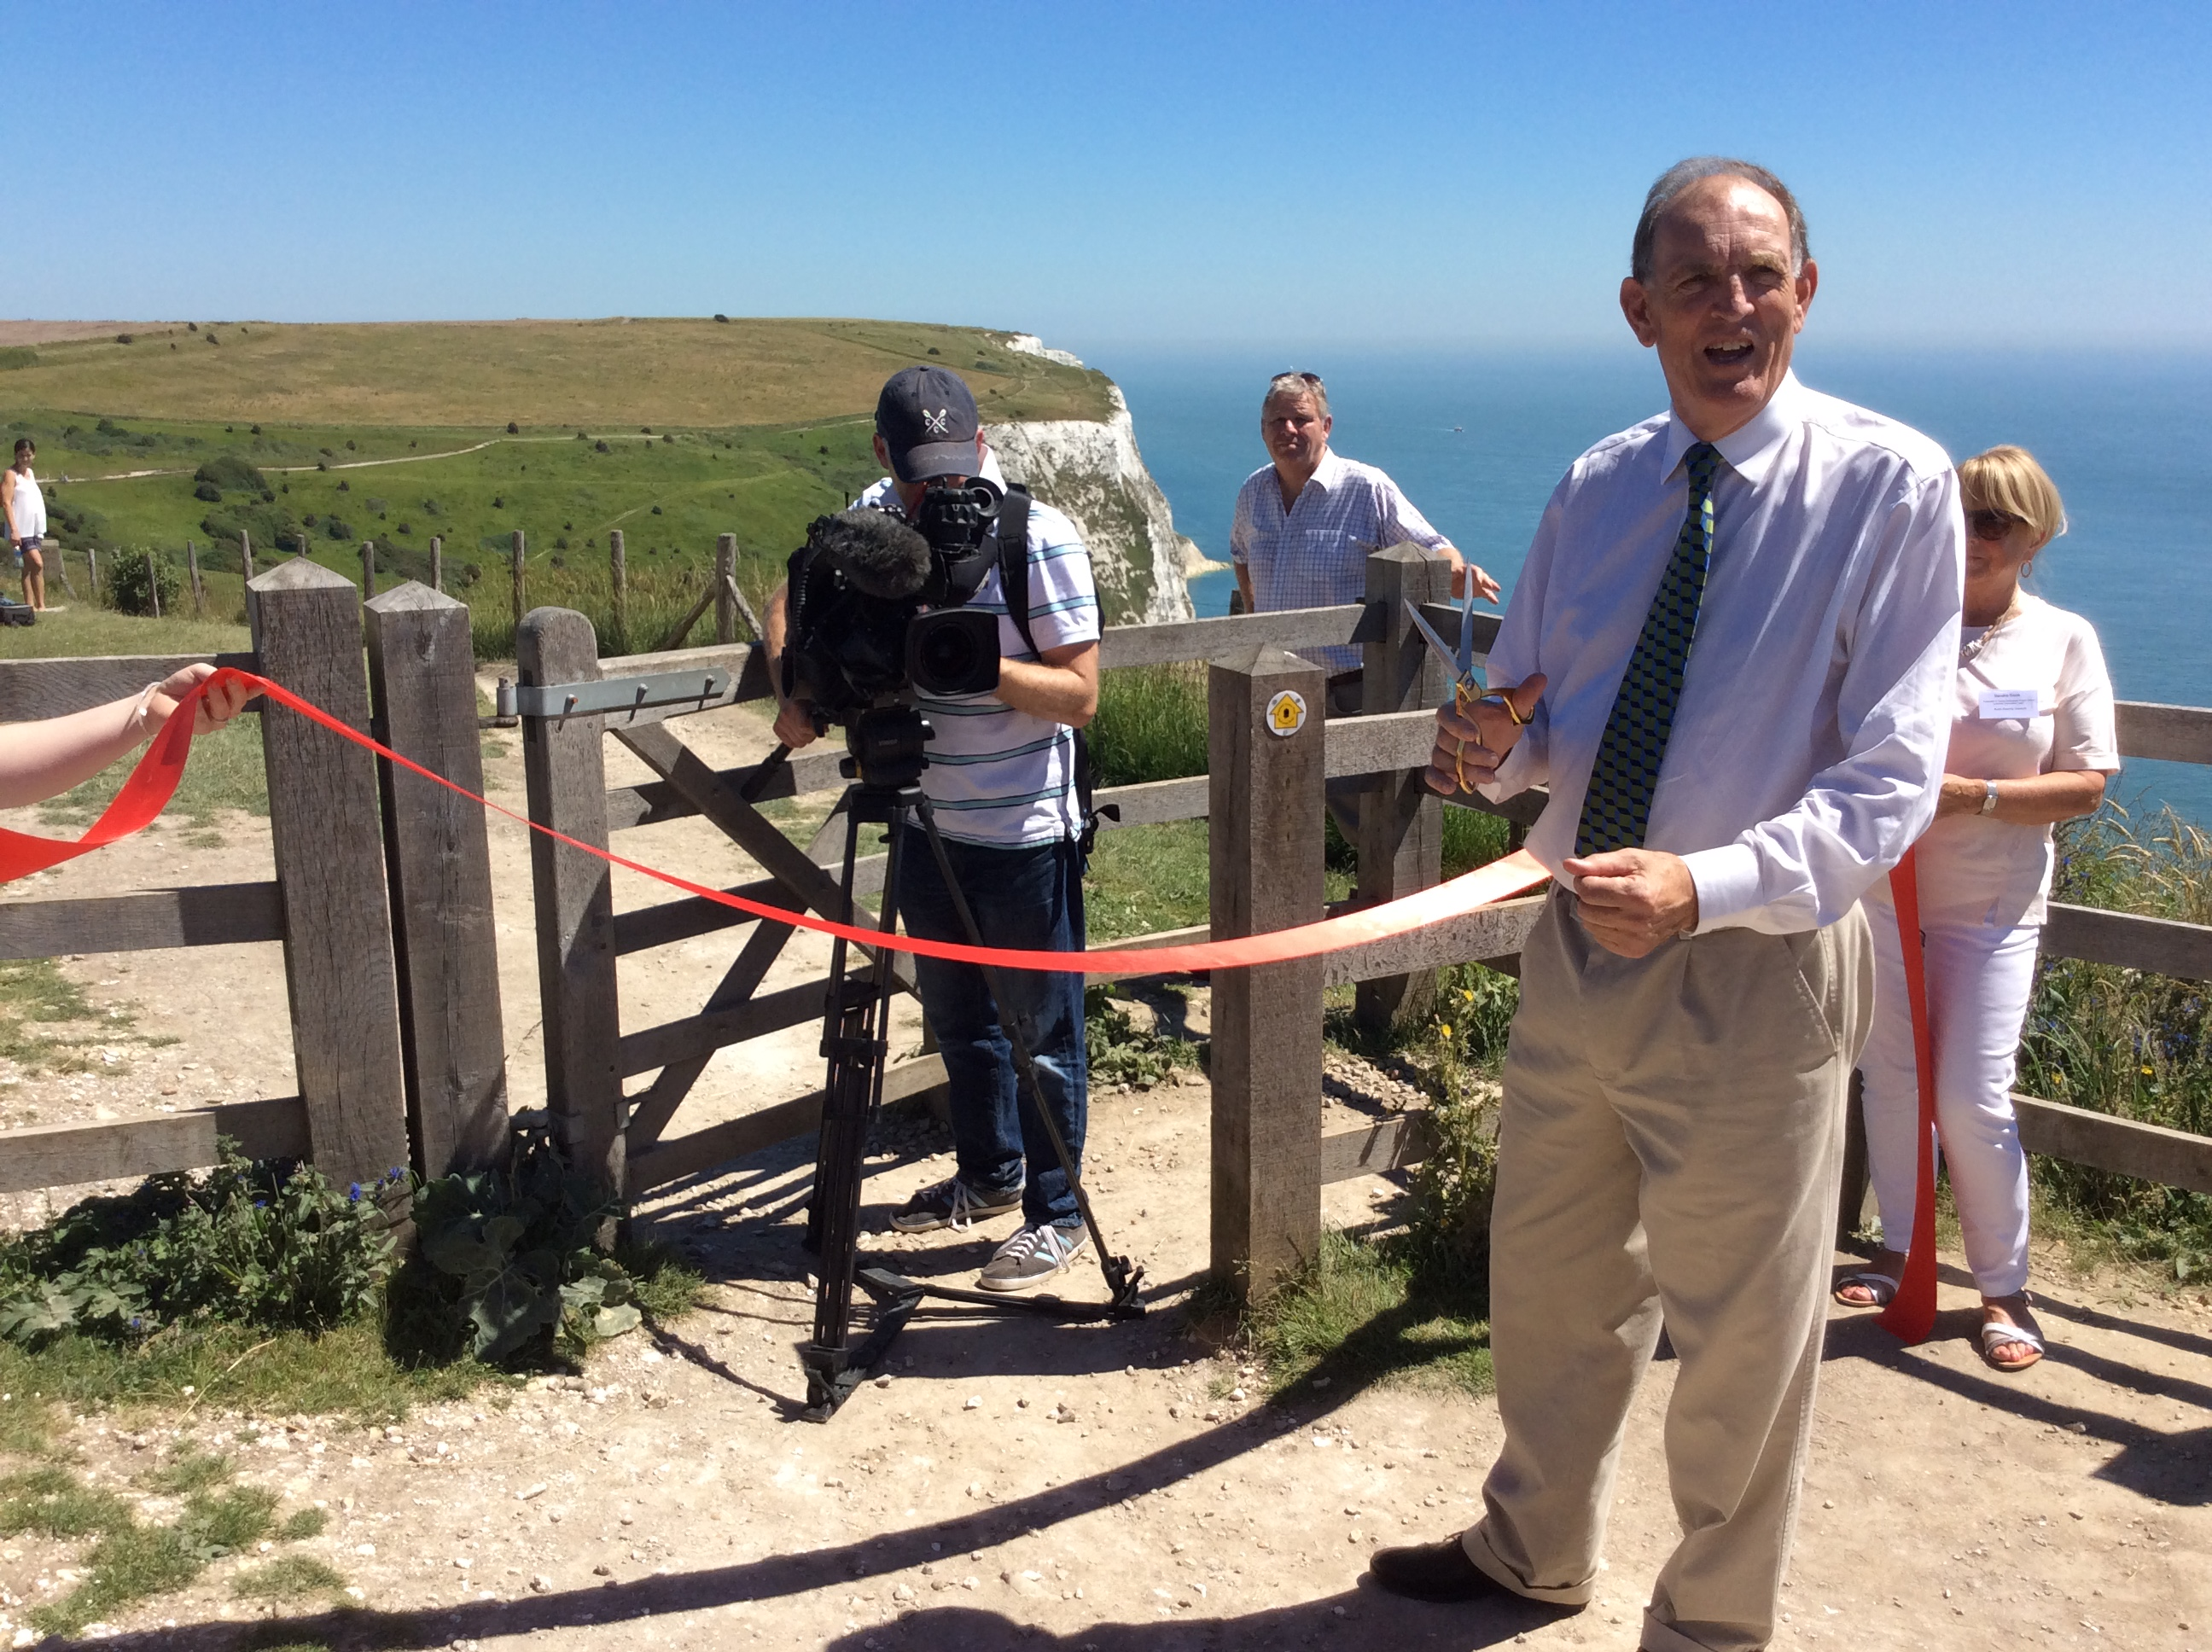 Chairman Andrew Sells opening the Kent Section of the England Coast Path